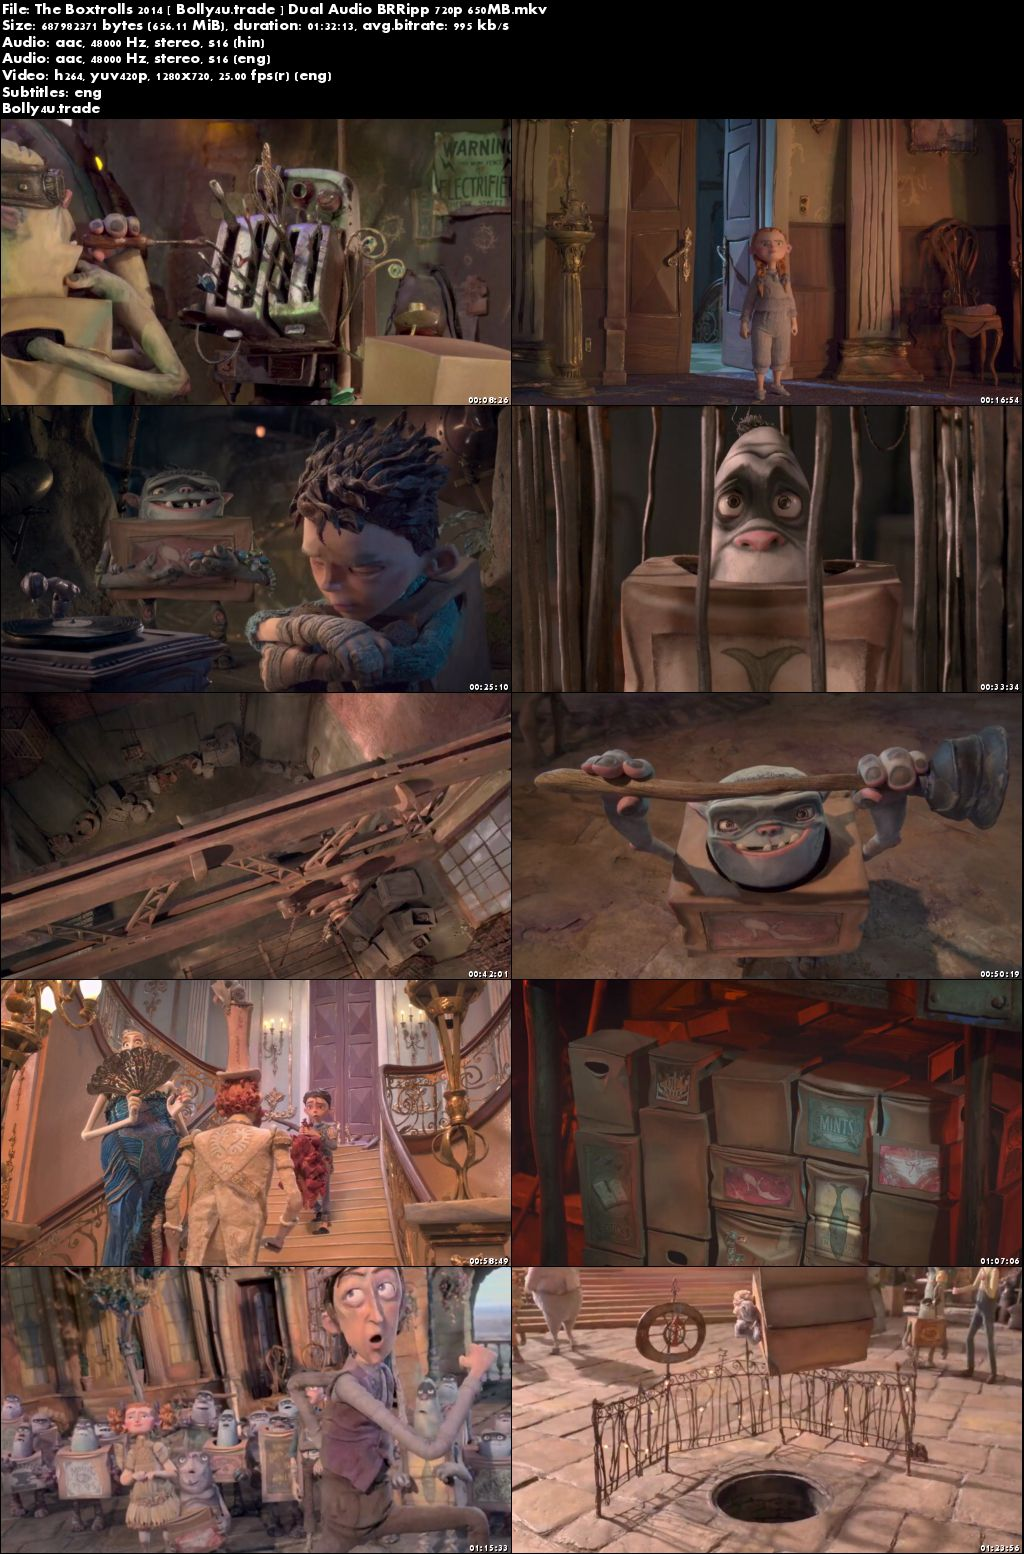 The Boxtrolls 2014 BluRay 650Mb Hindi Dubbed Dual Audio 720p Download